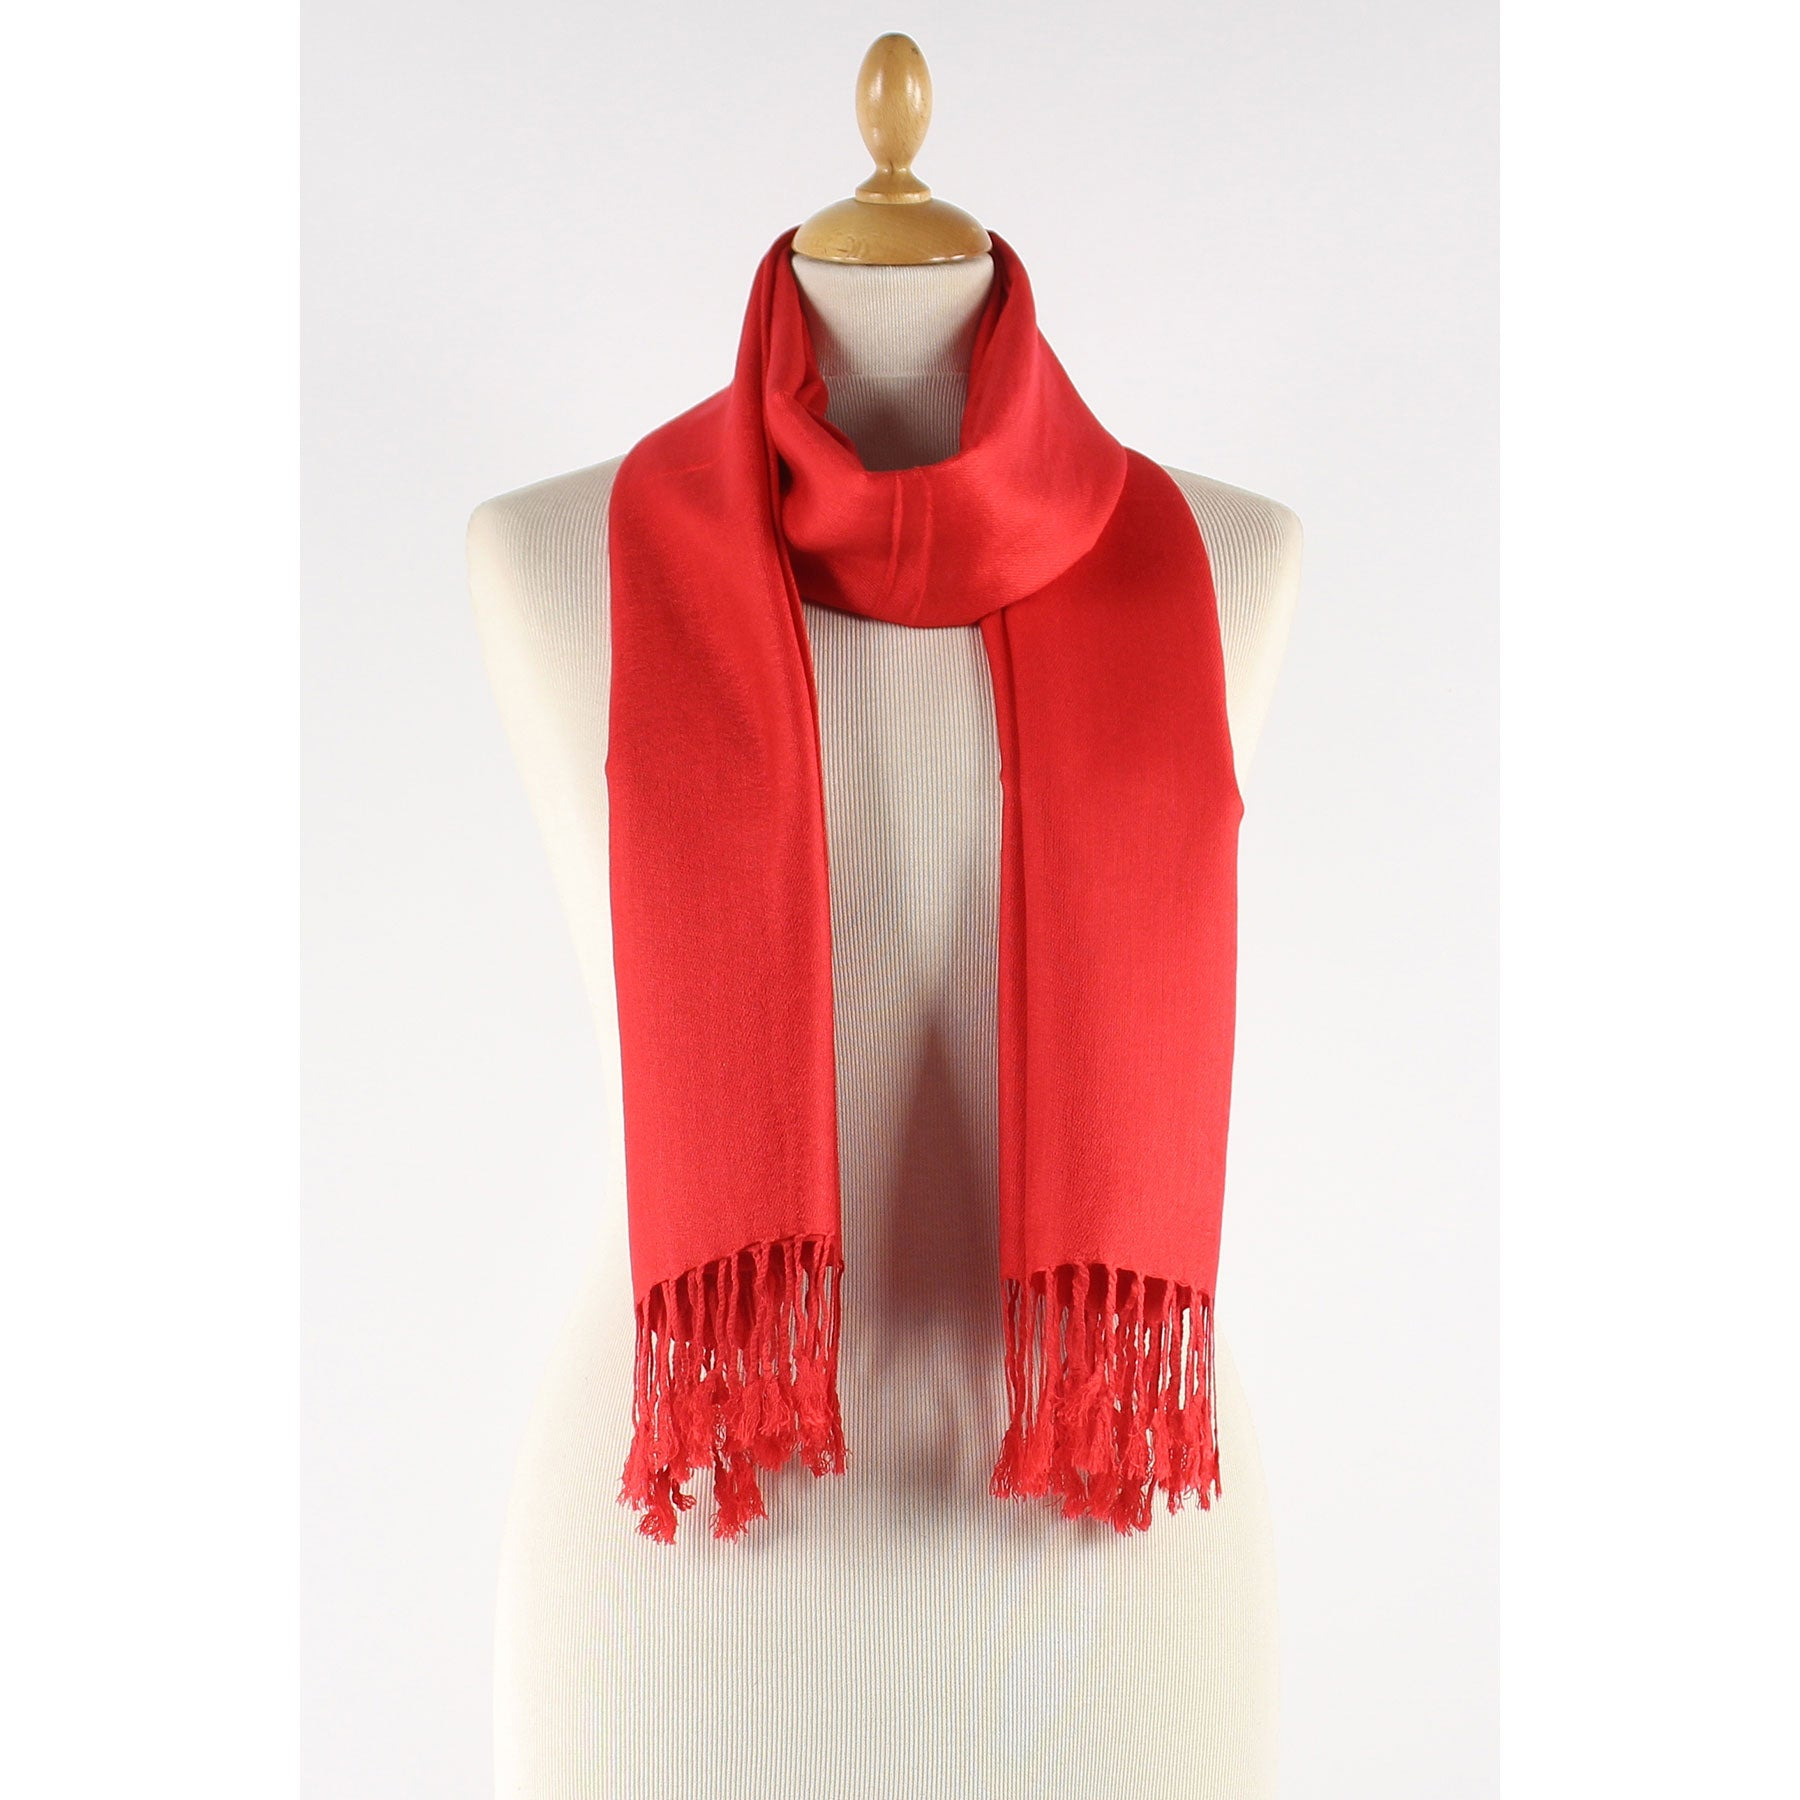 Fire Red scarf. soft and silky